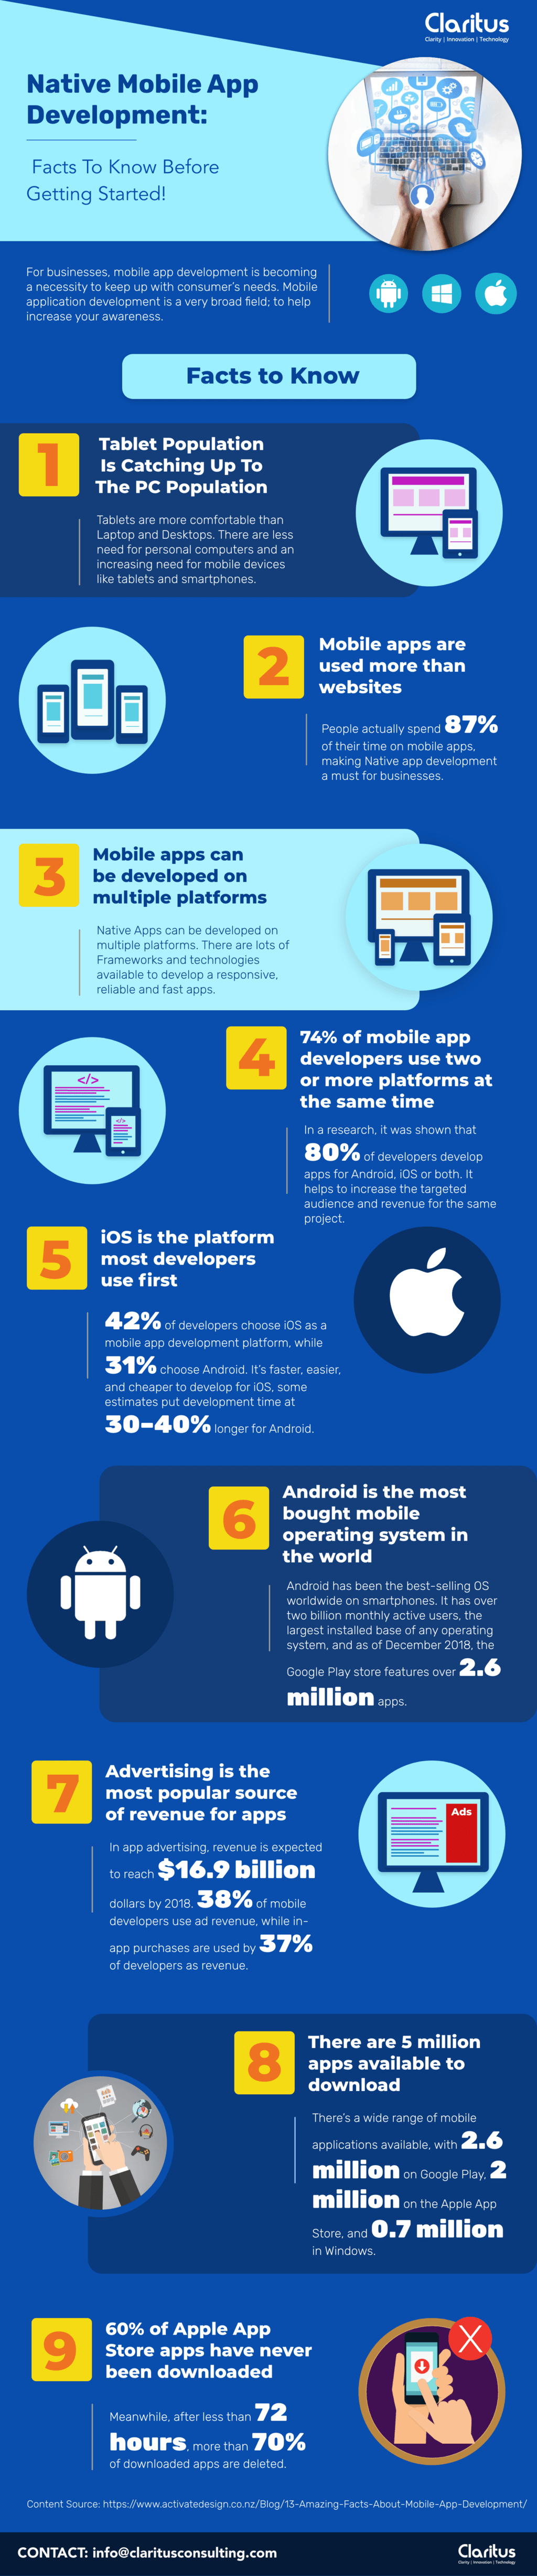 Native Mobile App Development: Facts To Know Before Getting ... via Claritus Consulting